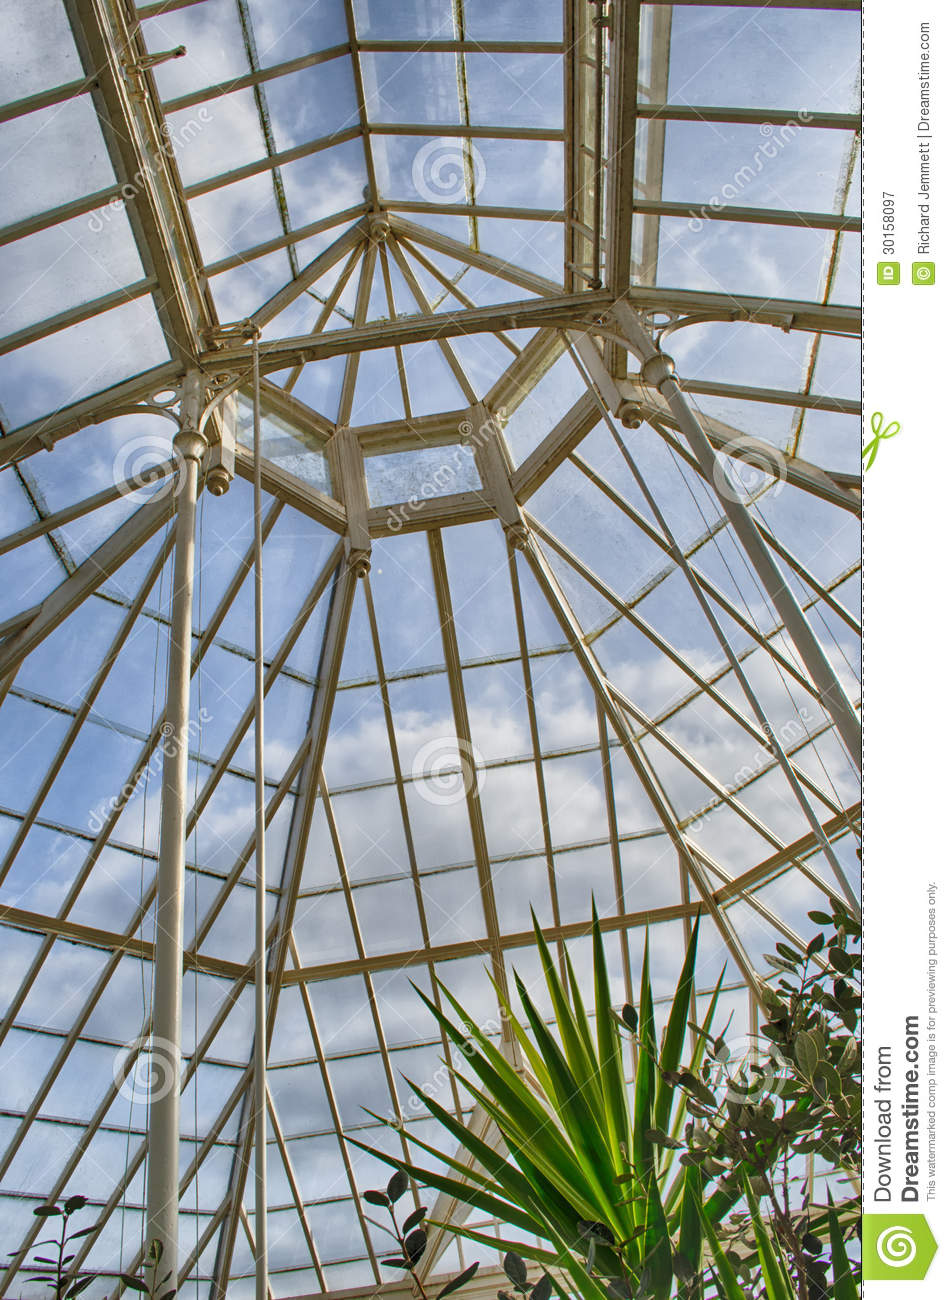 Clumber Park Glass House